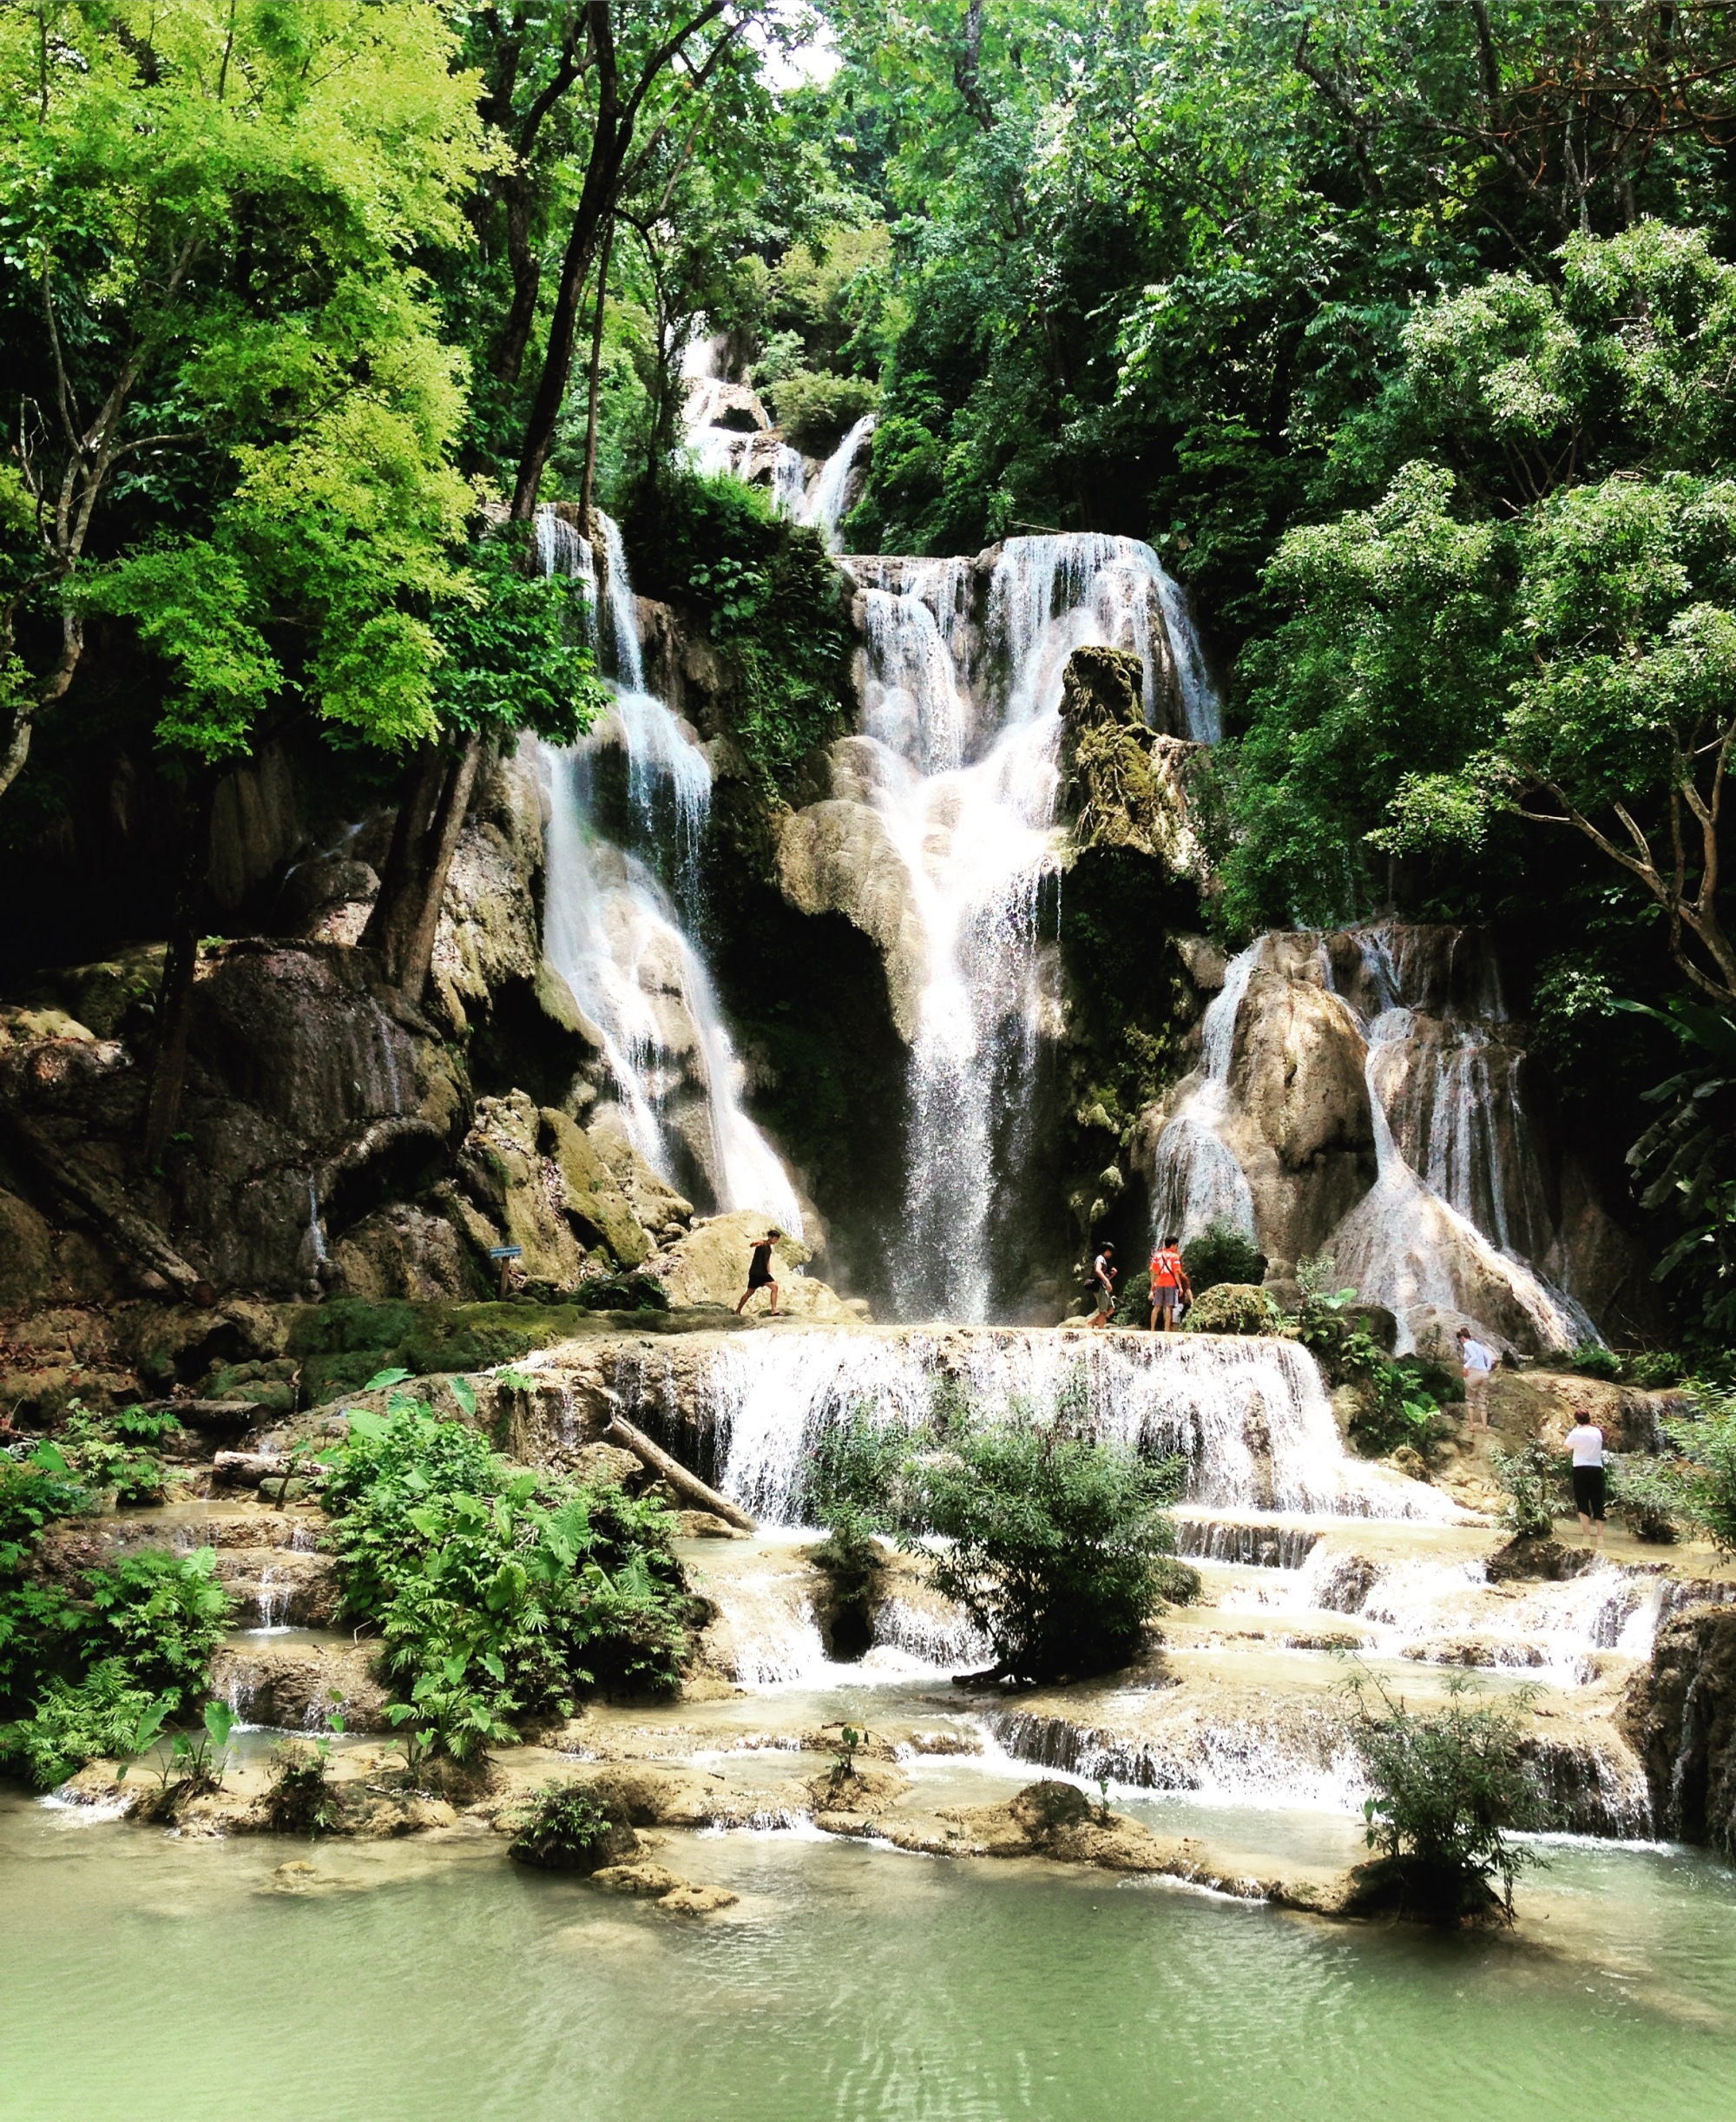 Green jungle surrounds the tall waterfalls